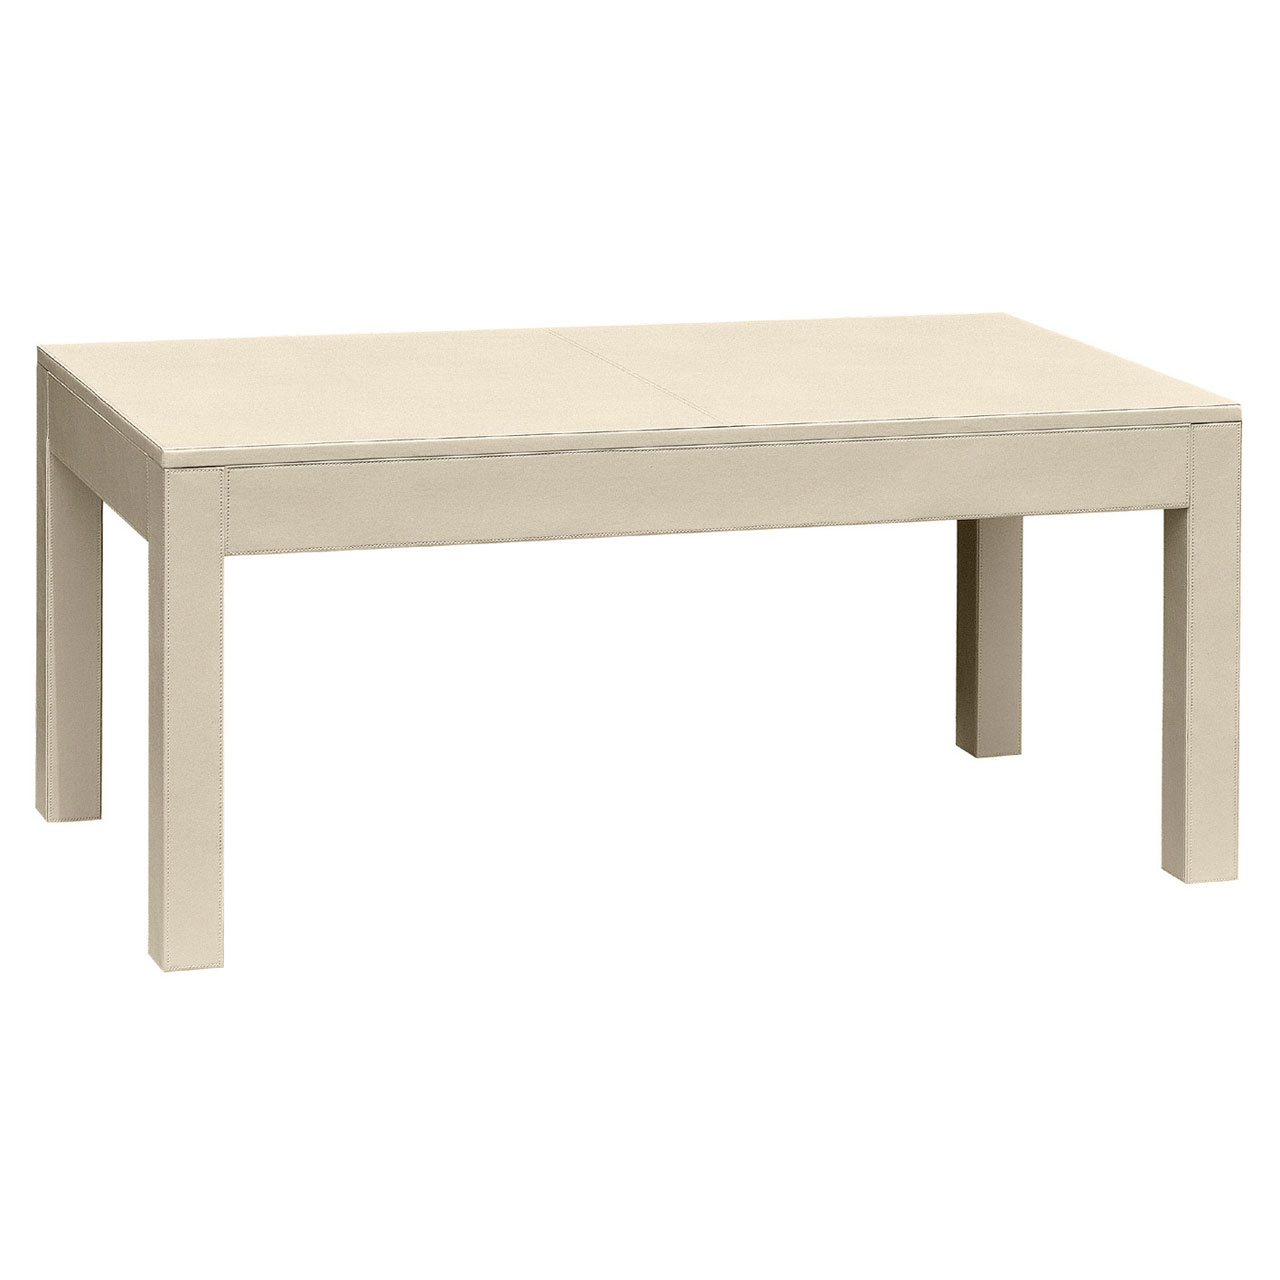 Coffee Table Mdf Table With A Cream Leather Effect Finish Ebay